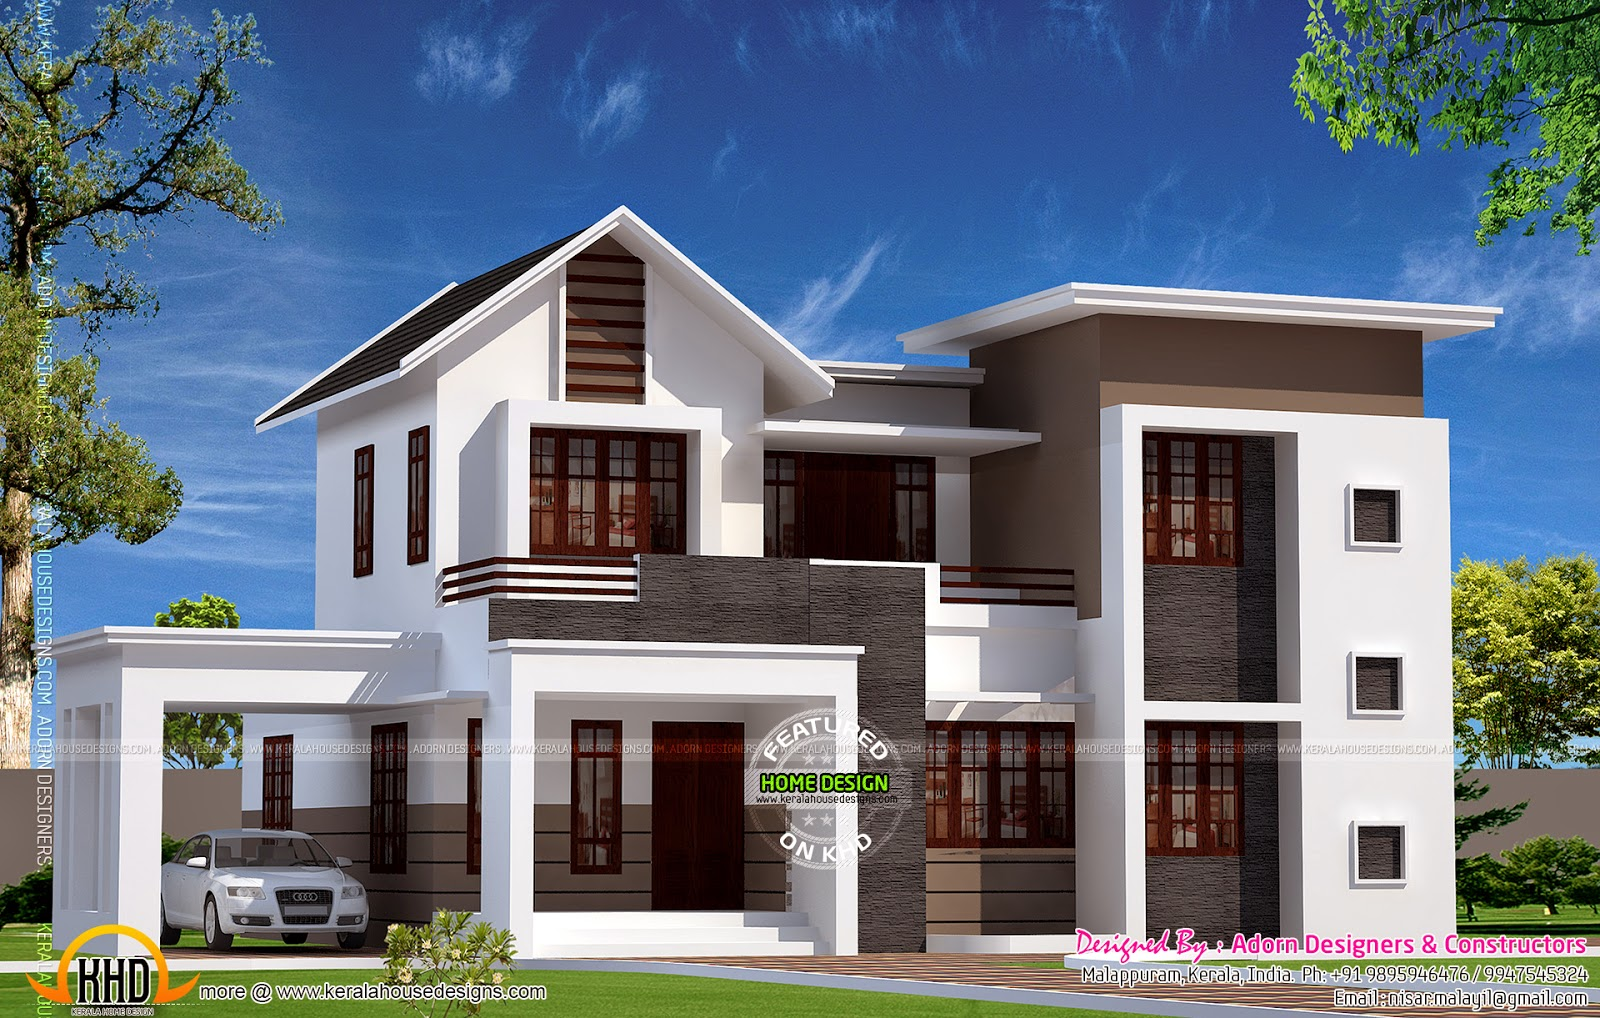 New house design in 1900 sq feet kerala home design and for New american style house plans